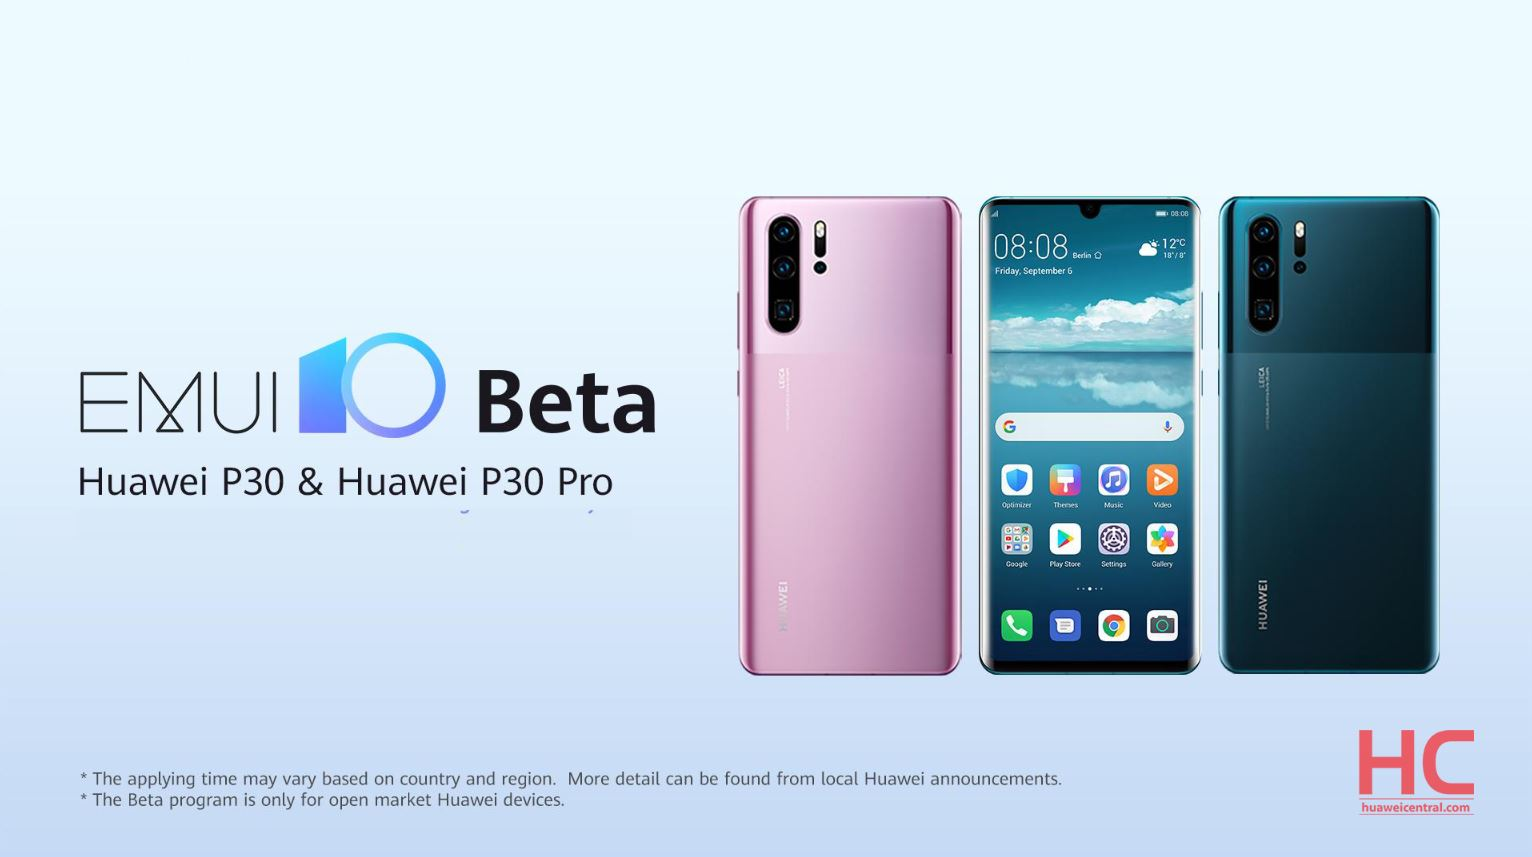 Breaking: EMUI 10 beta rolling out for Huawei P30 and Huawei